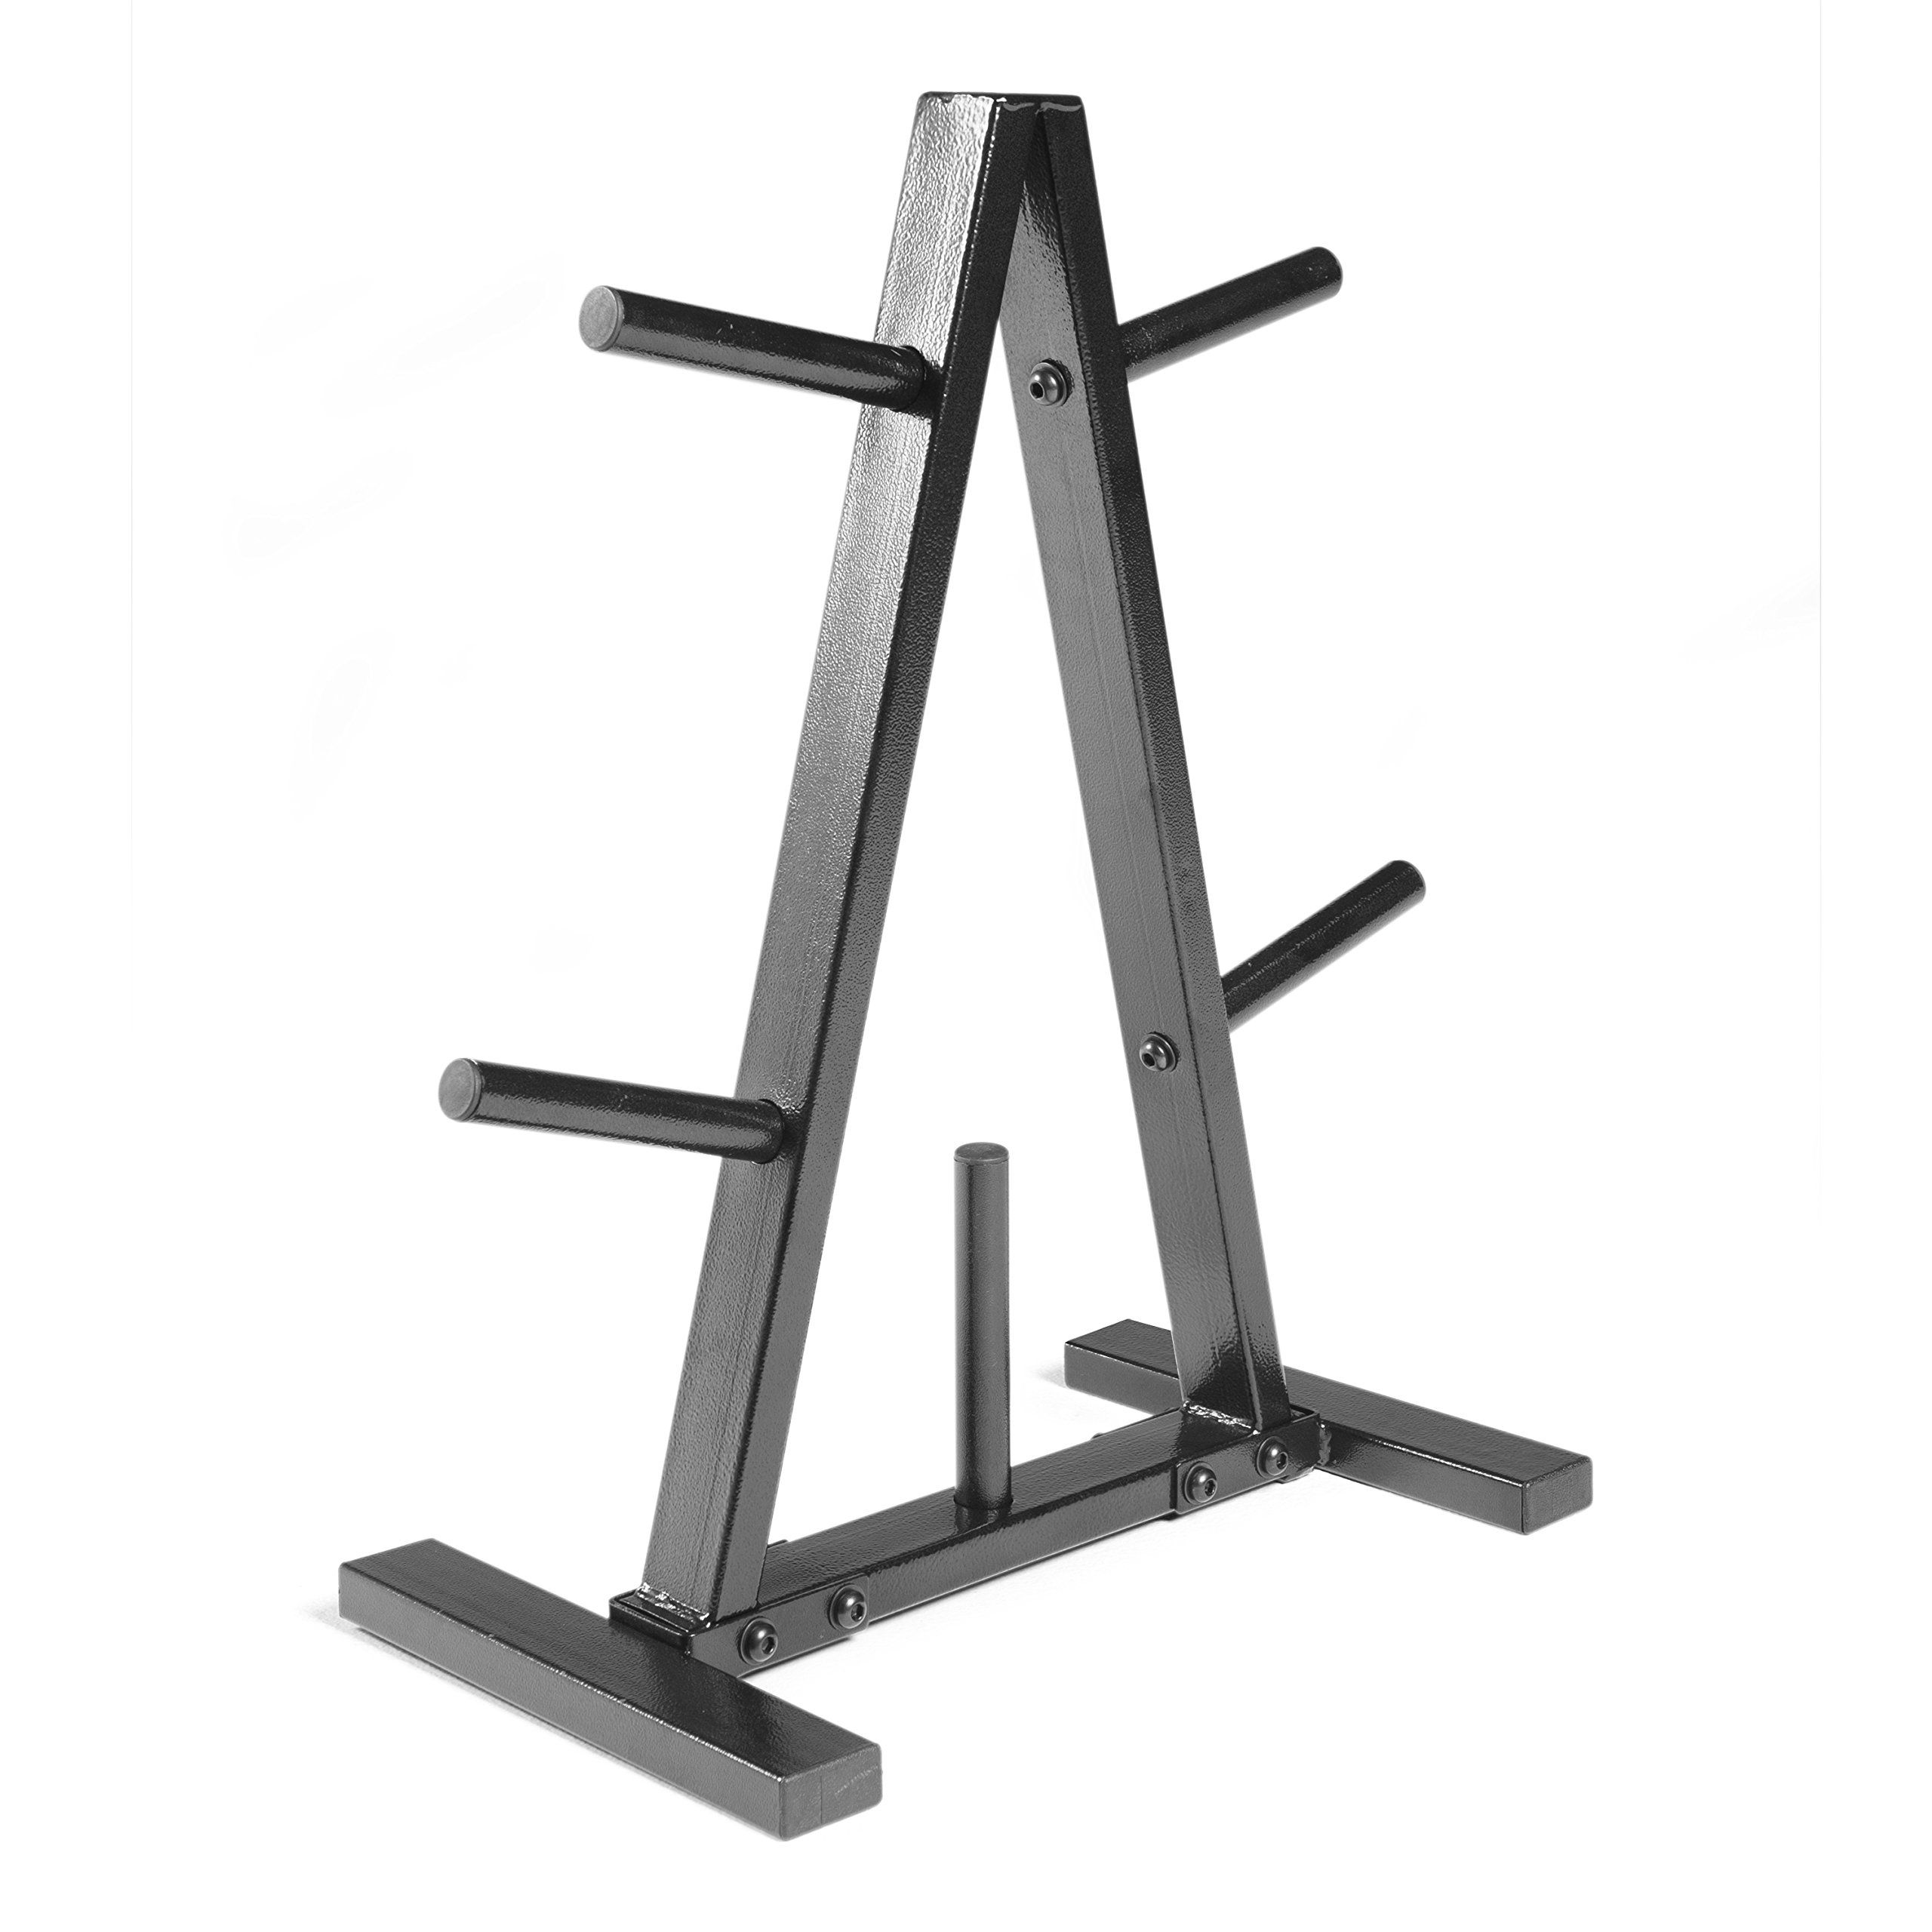 CAP Barbell Plate Rack 1  Black. Holds 1-inch plates.  sc 1 st  Pinterest & CAP Barbell Plate Rack 1